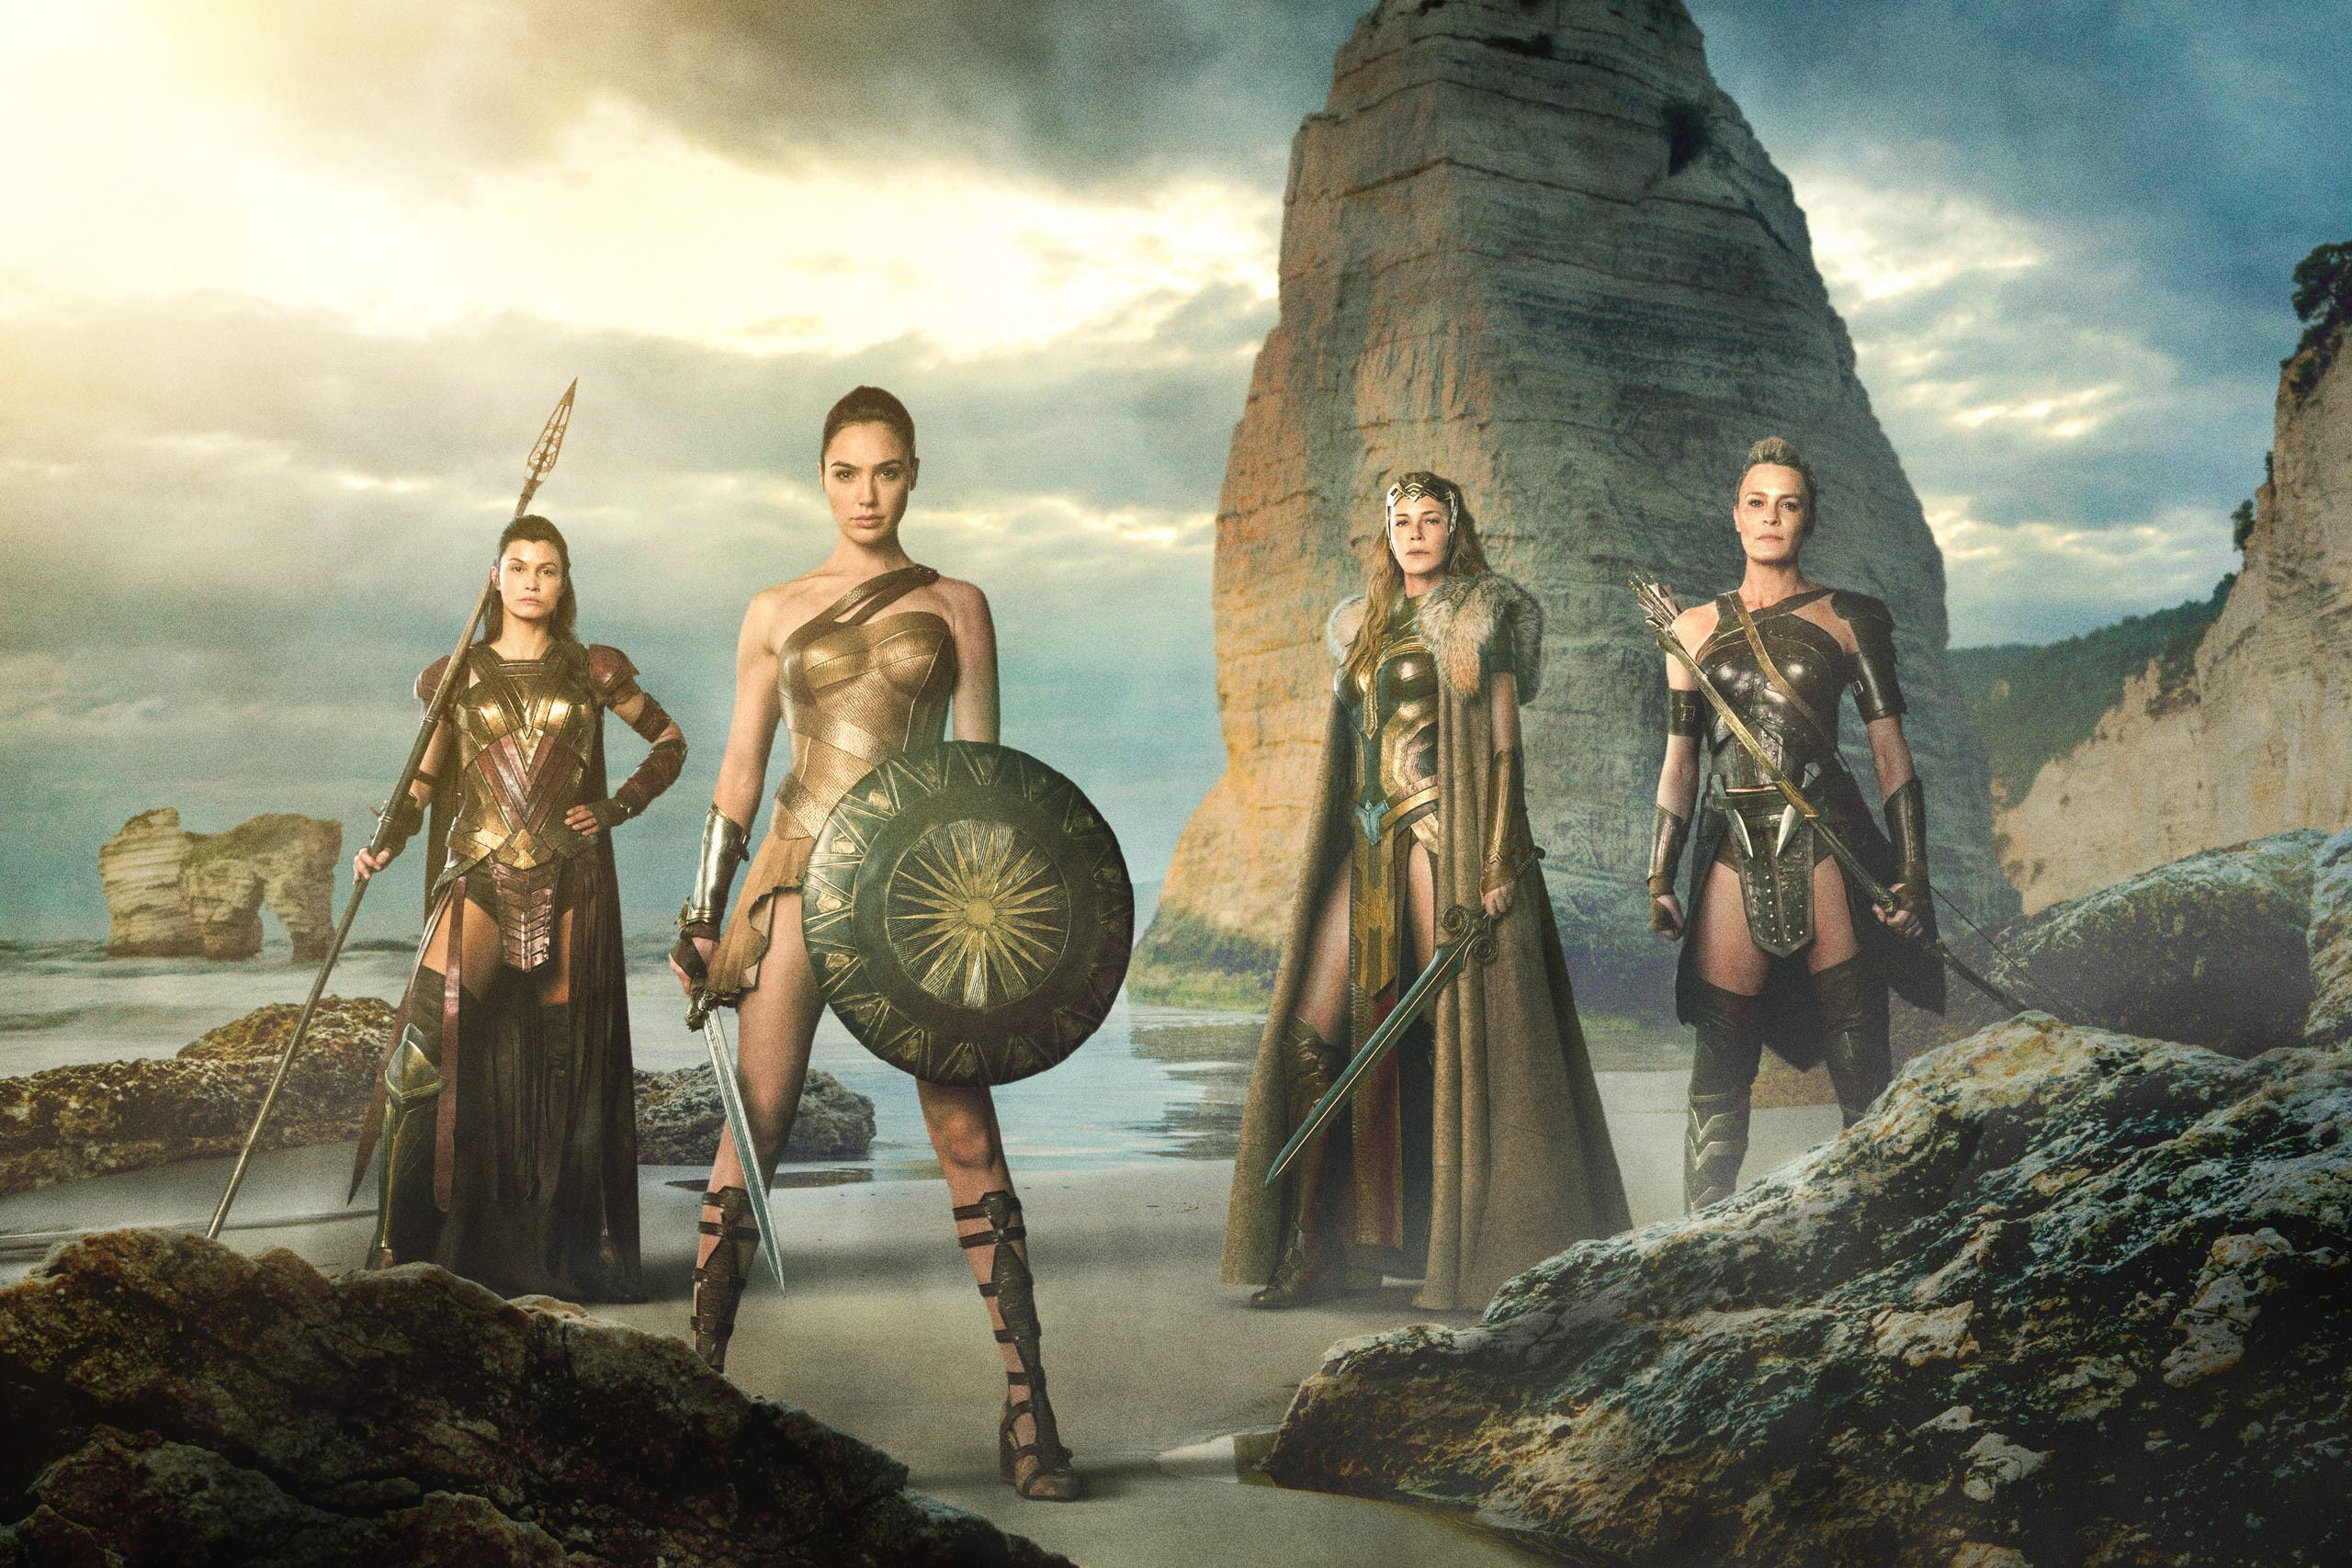 (L-R) LISA LOVEN KONGSLI as Menalippe, GAL GADOT as Diana, CONNIE NEILSEN as Hippolyta and ROBIN WRIGHT as Antiope. (Warner Bros. Pictures release)